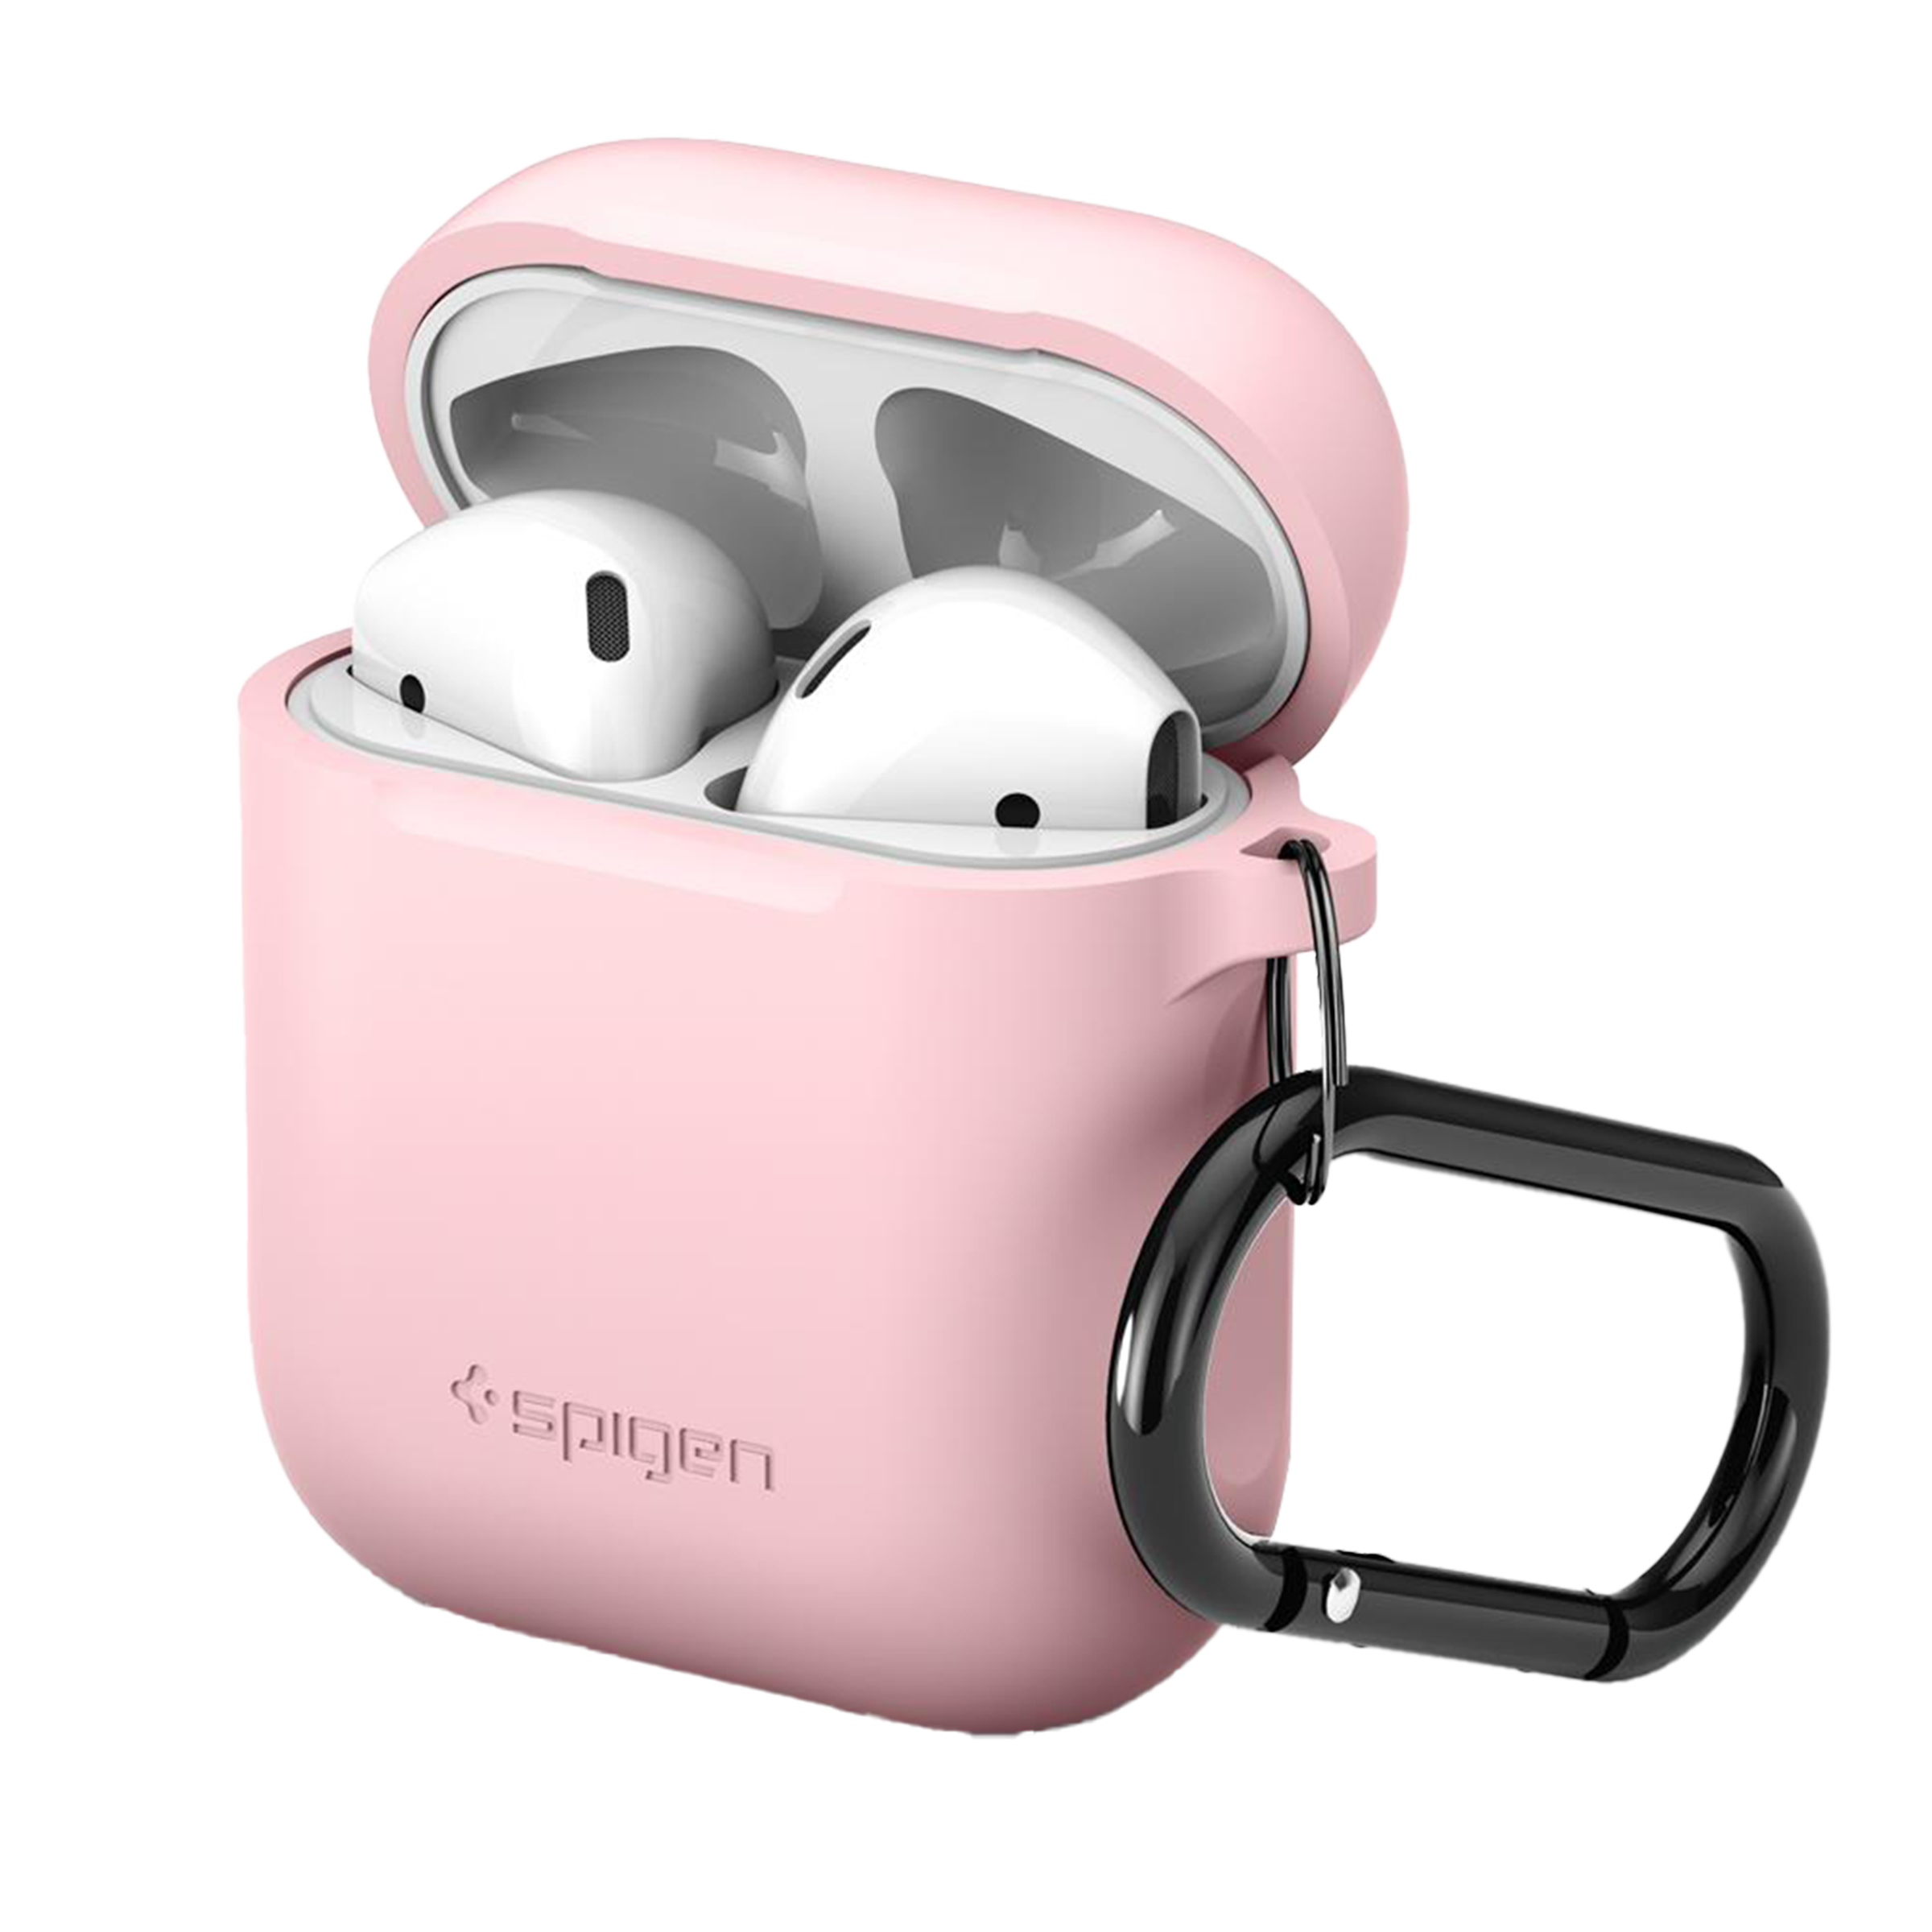 Spigen Rugged Armor Pro Thermoplastic Polyurethane Full Cover Case AirPods 1st Gen (Adjustable Strap, 066CS24810, Pink)_1